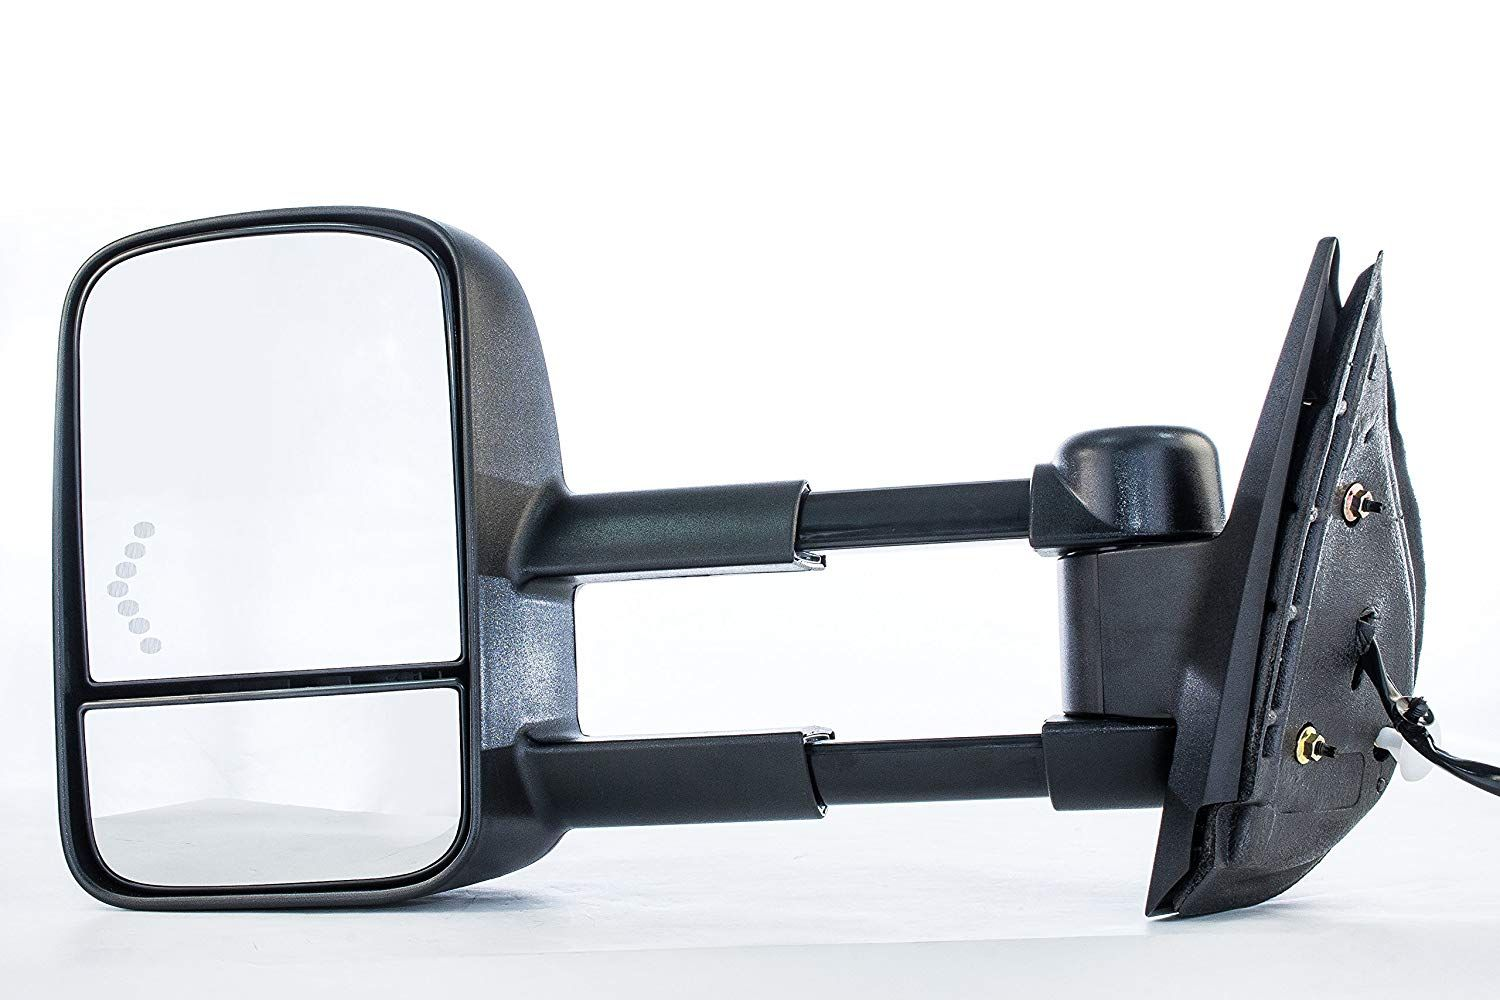 Driver Side Towing Mirror for Chevy Silverado GMC Sierra